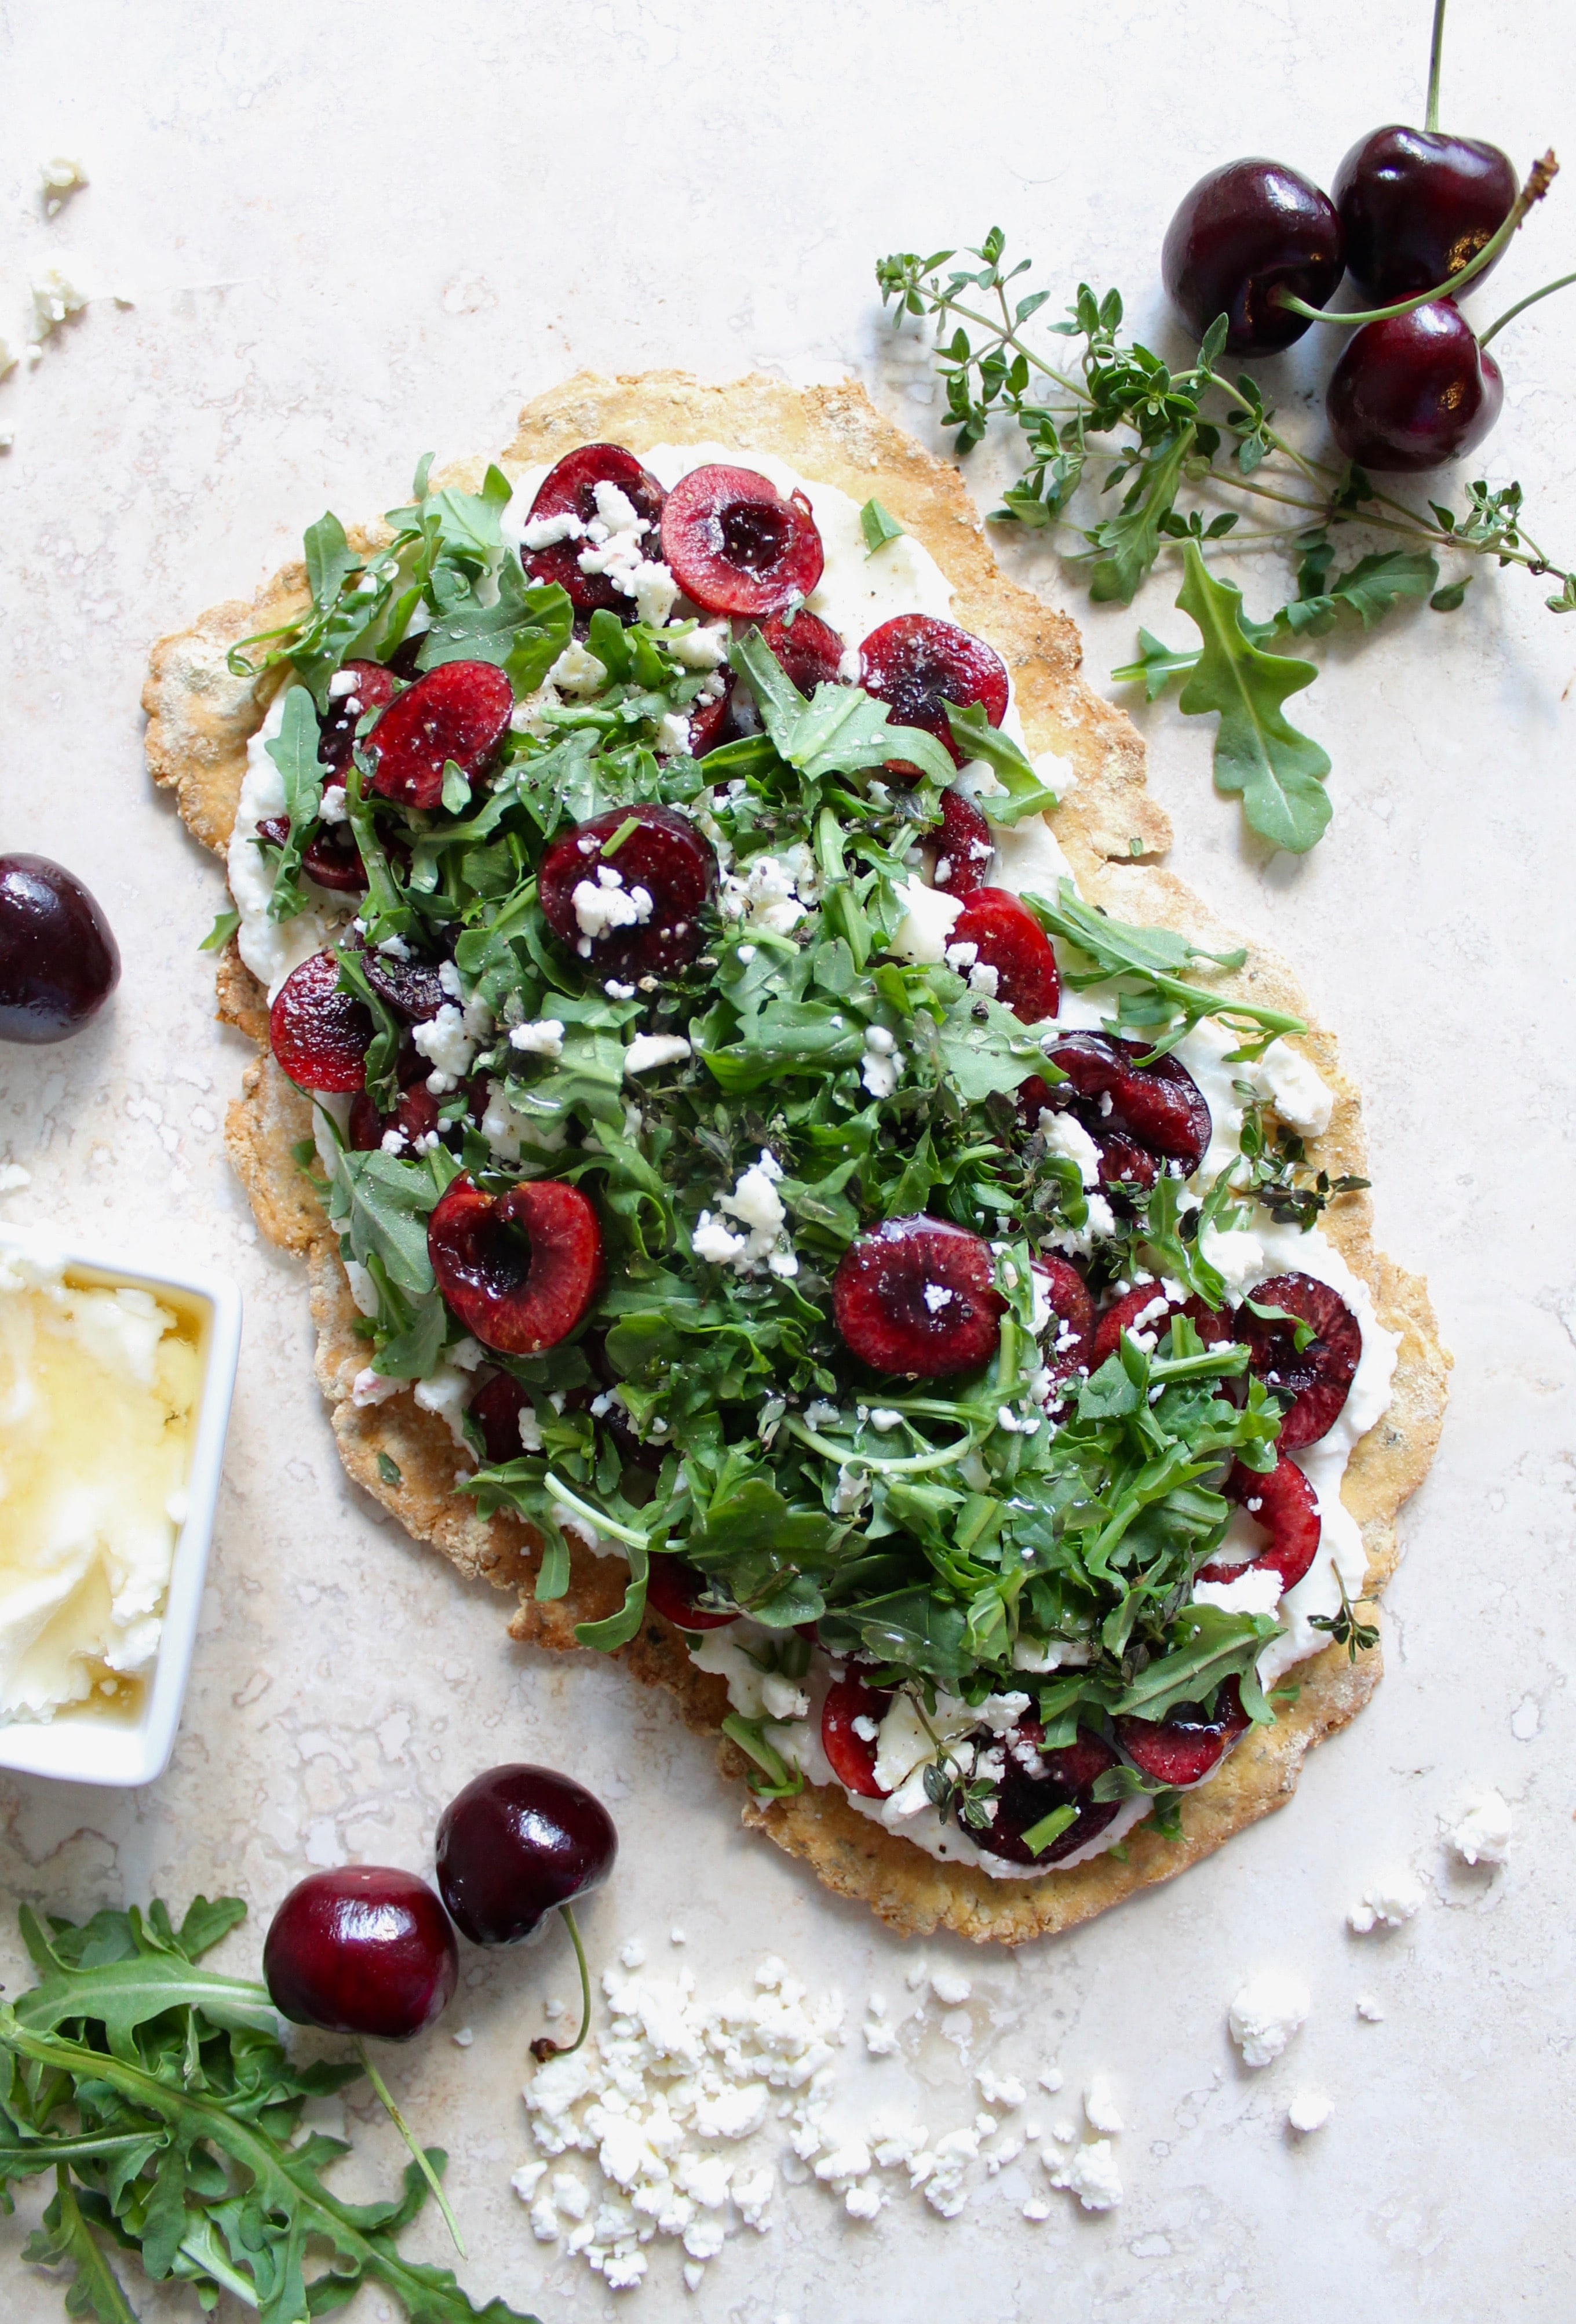 Chickpea Flour Flatbread with Cherries, Honey Ricotta, Feta, and Arugula (gf)